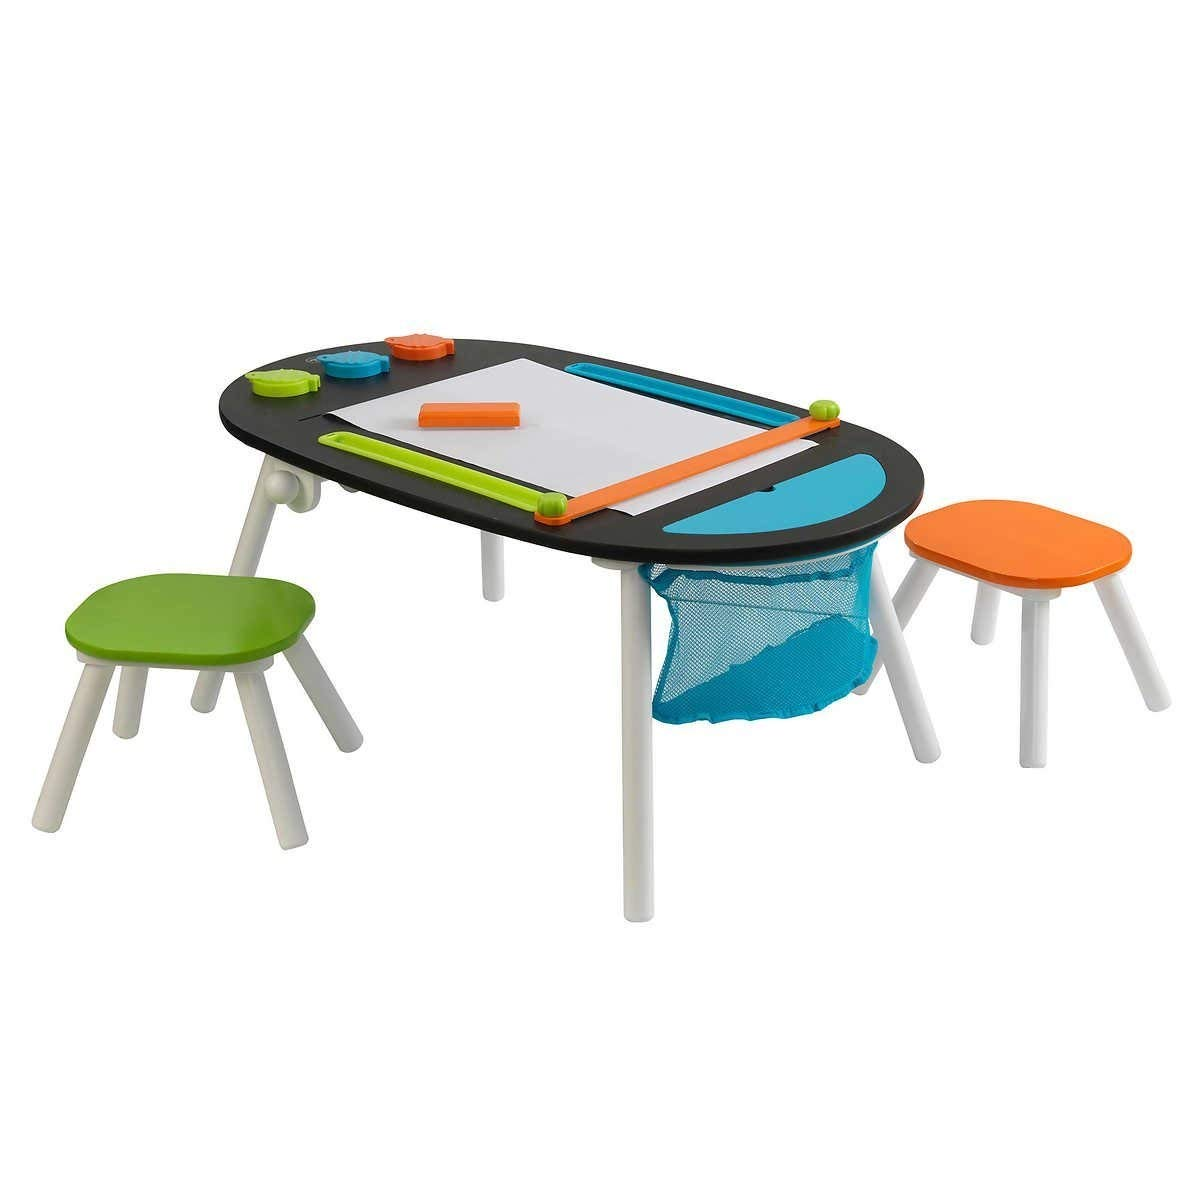 KidKraft Deluxe Chalkboard Art Table with Stools (3+ Years) 953166 4340705845